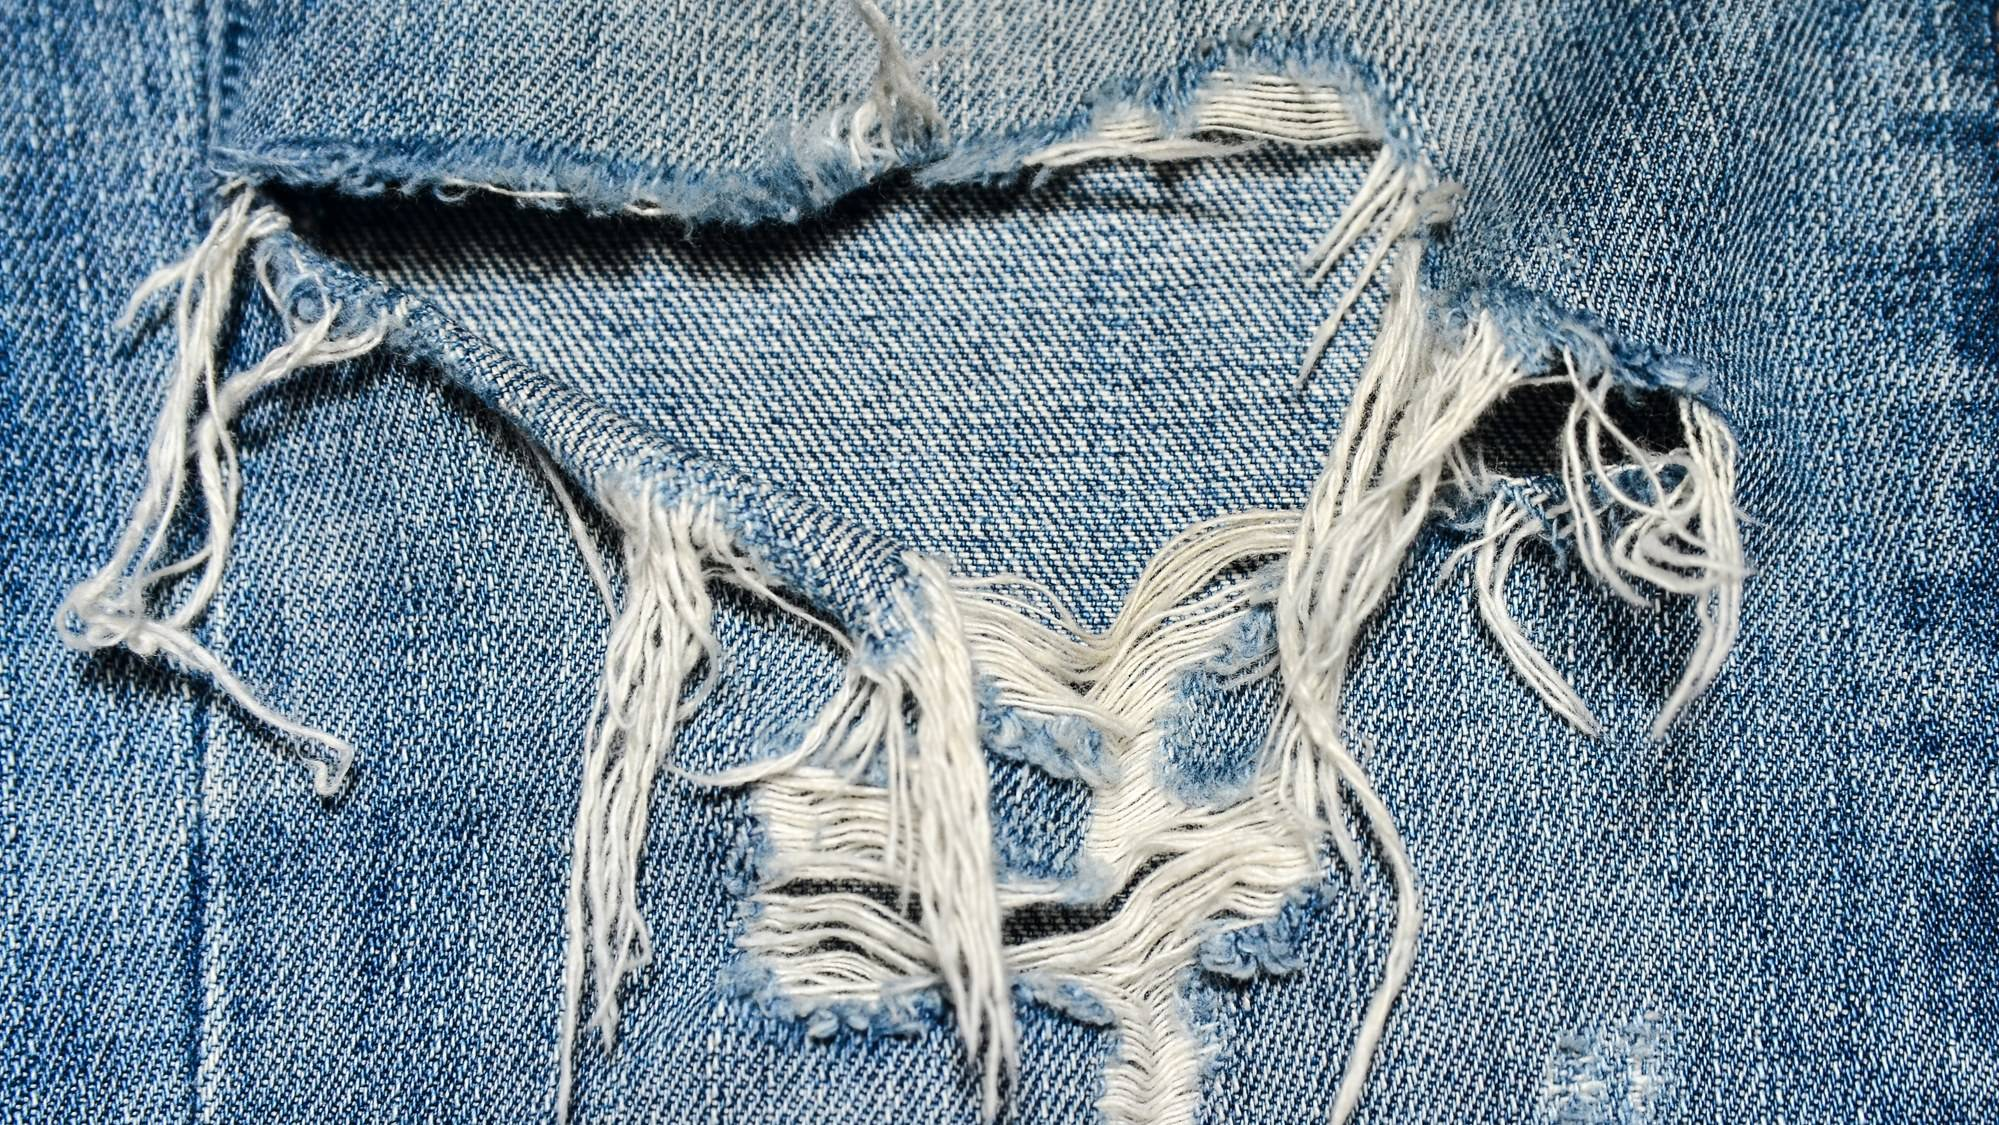 denim-repair